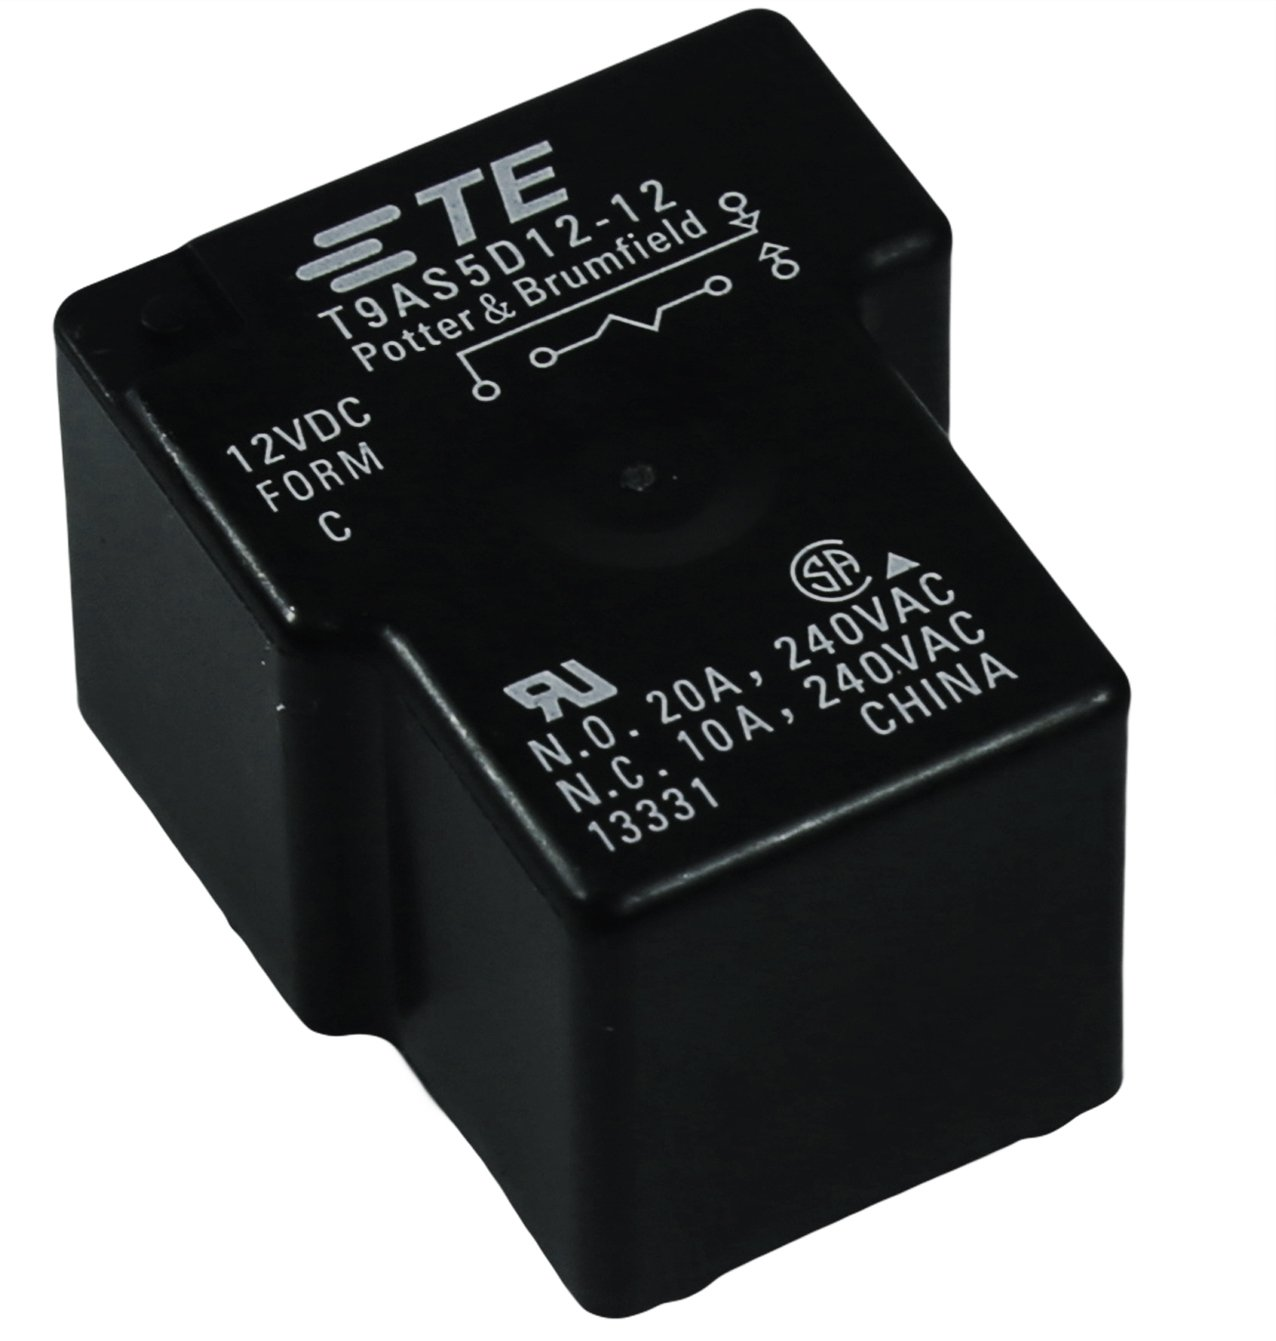 TYCO T9AS5D12-12 POTTER & BRUMFIELD SPDT 1 Form-C 12V RELAYS